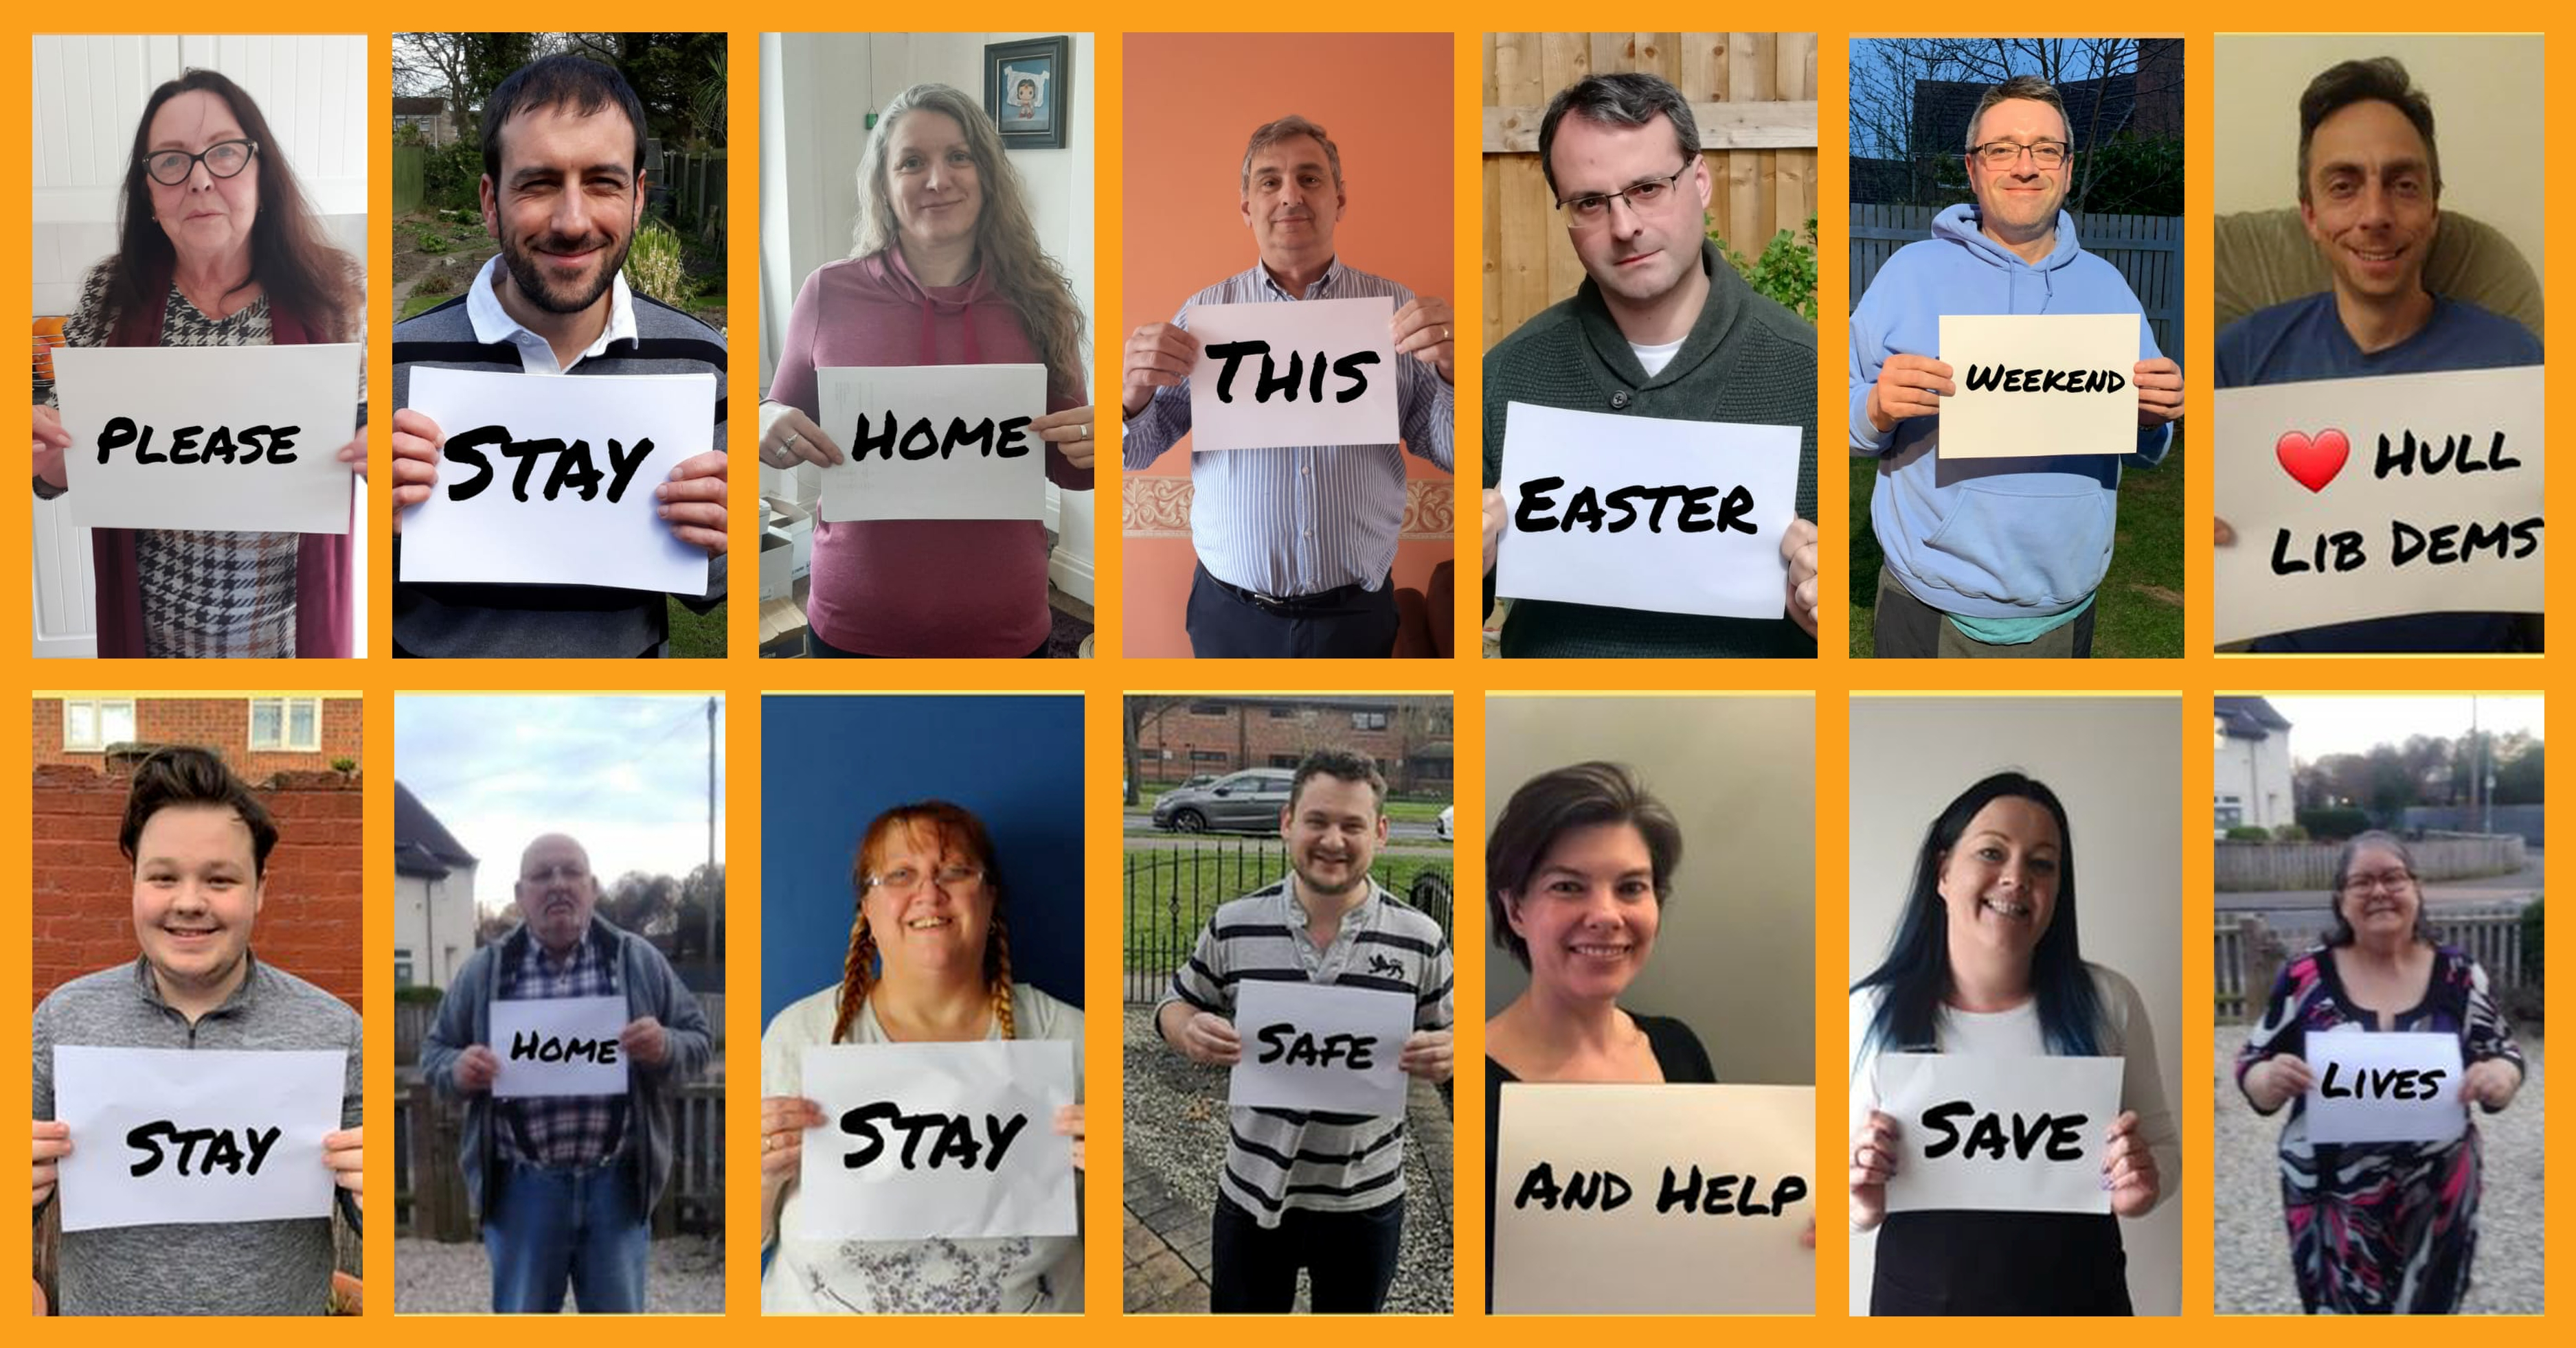 Hull Lib Dems say stay home - and stay safe - this Easter